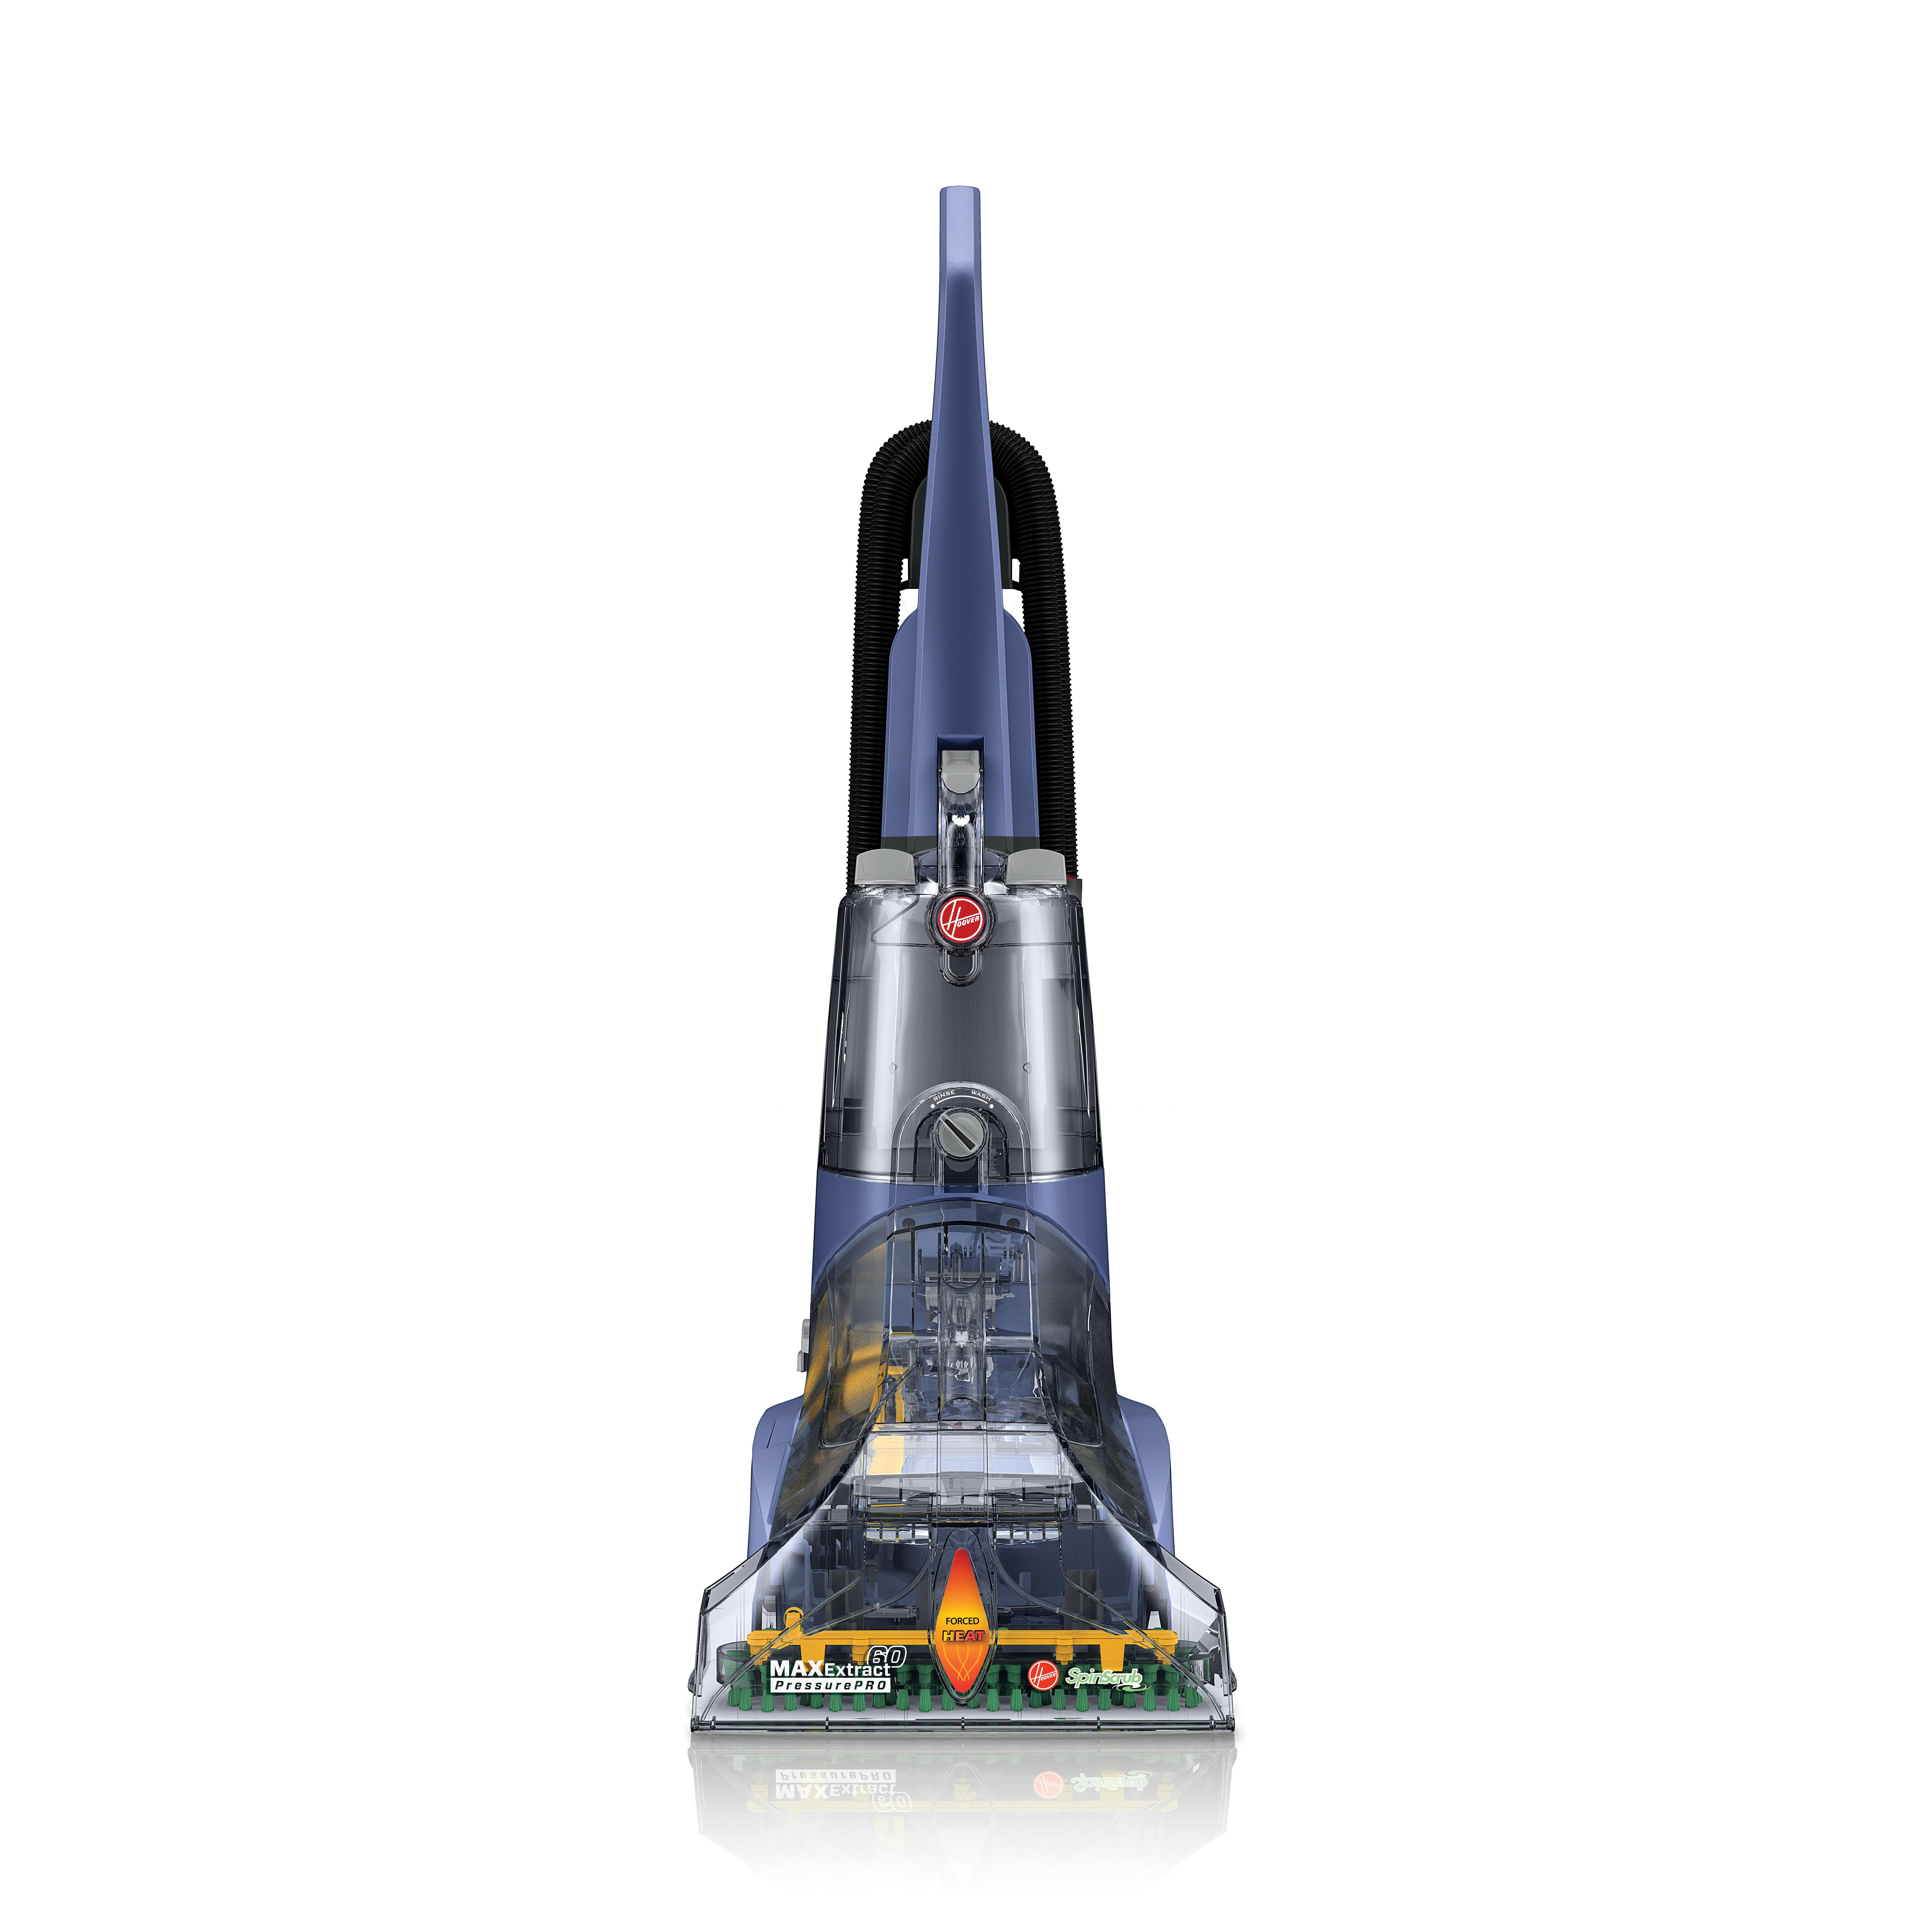 medium resolution of max extract 60 pressure pro carpet cleaner fh50220 wiring diagram of hoover